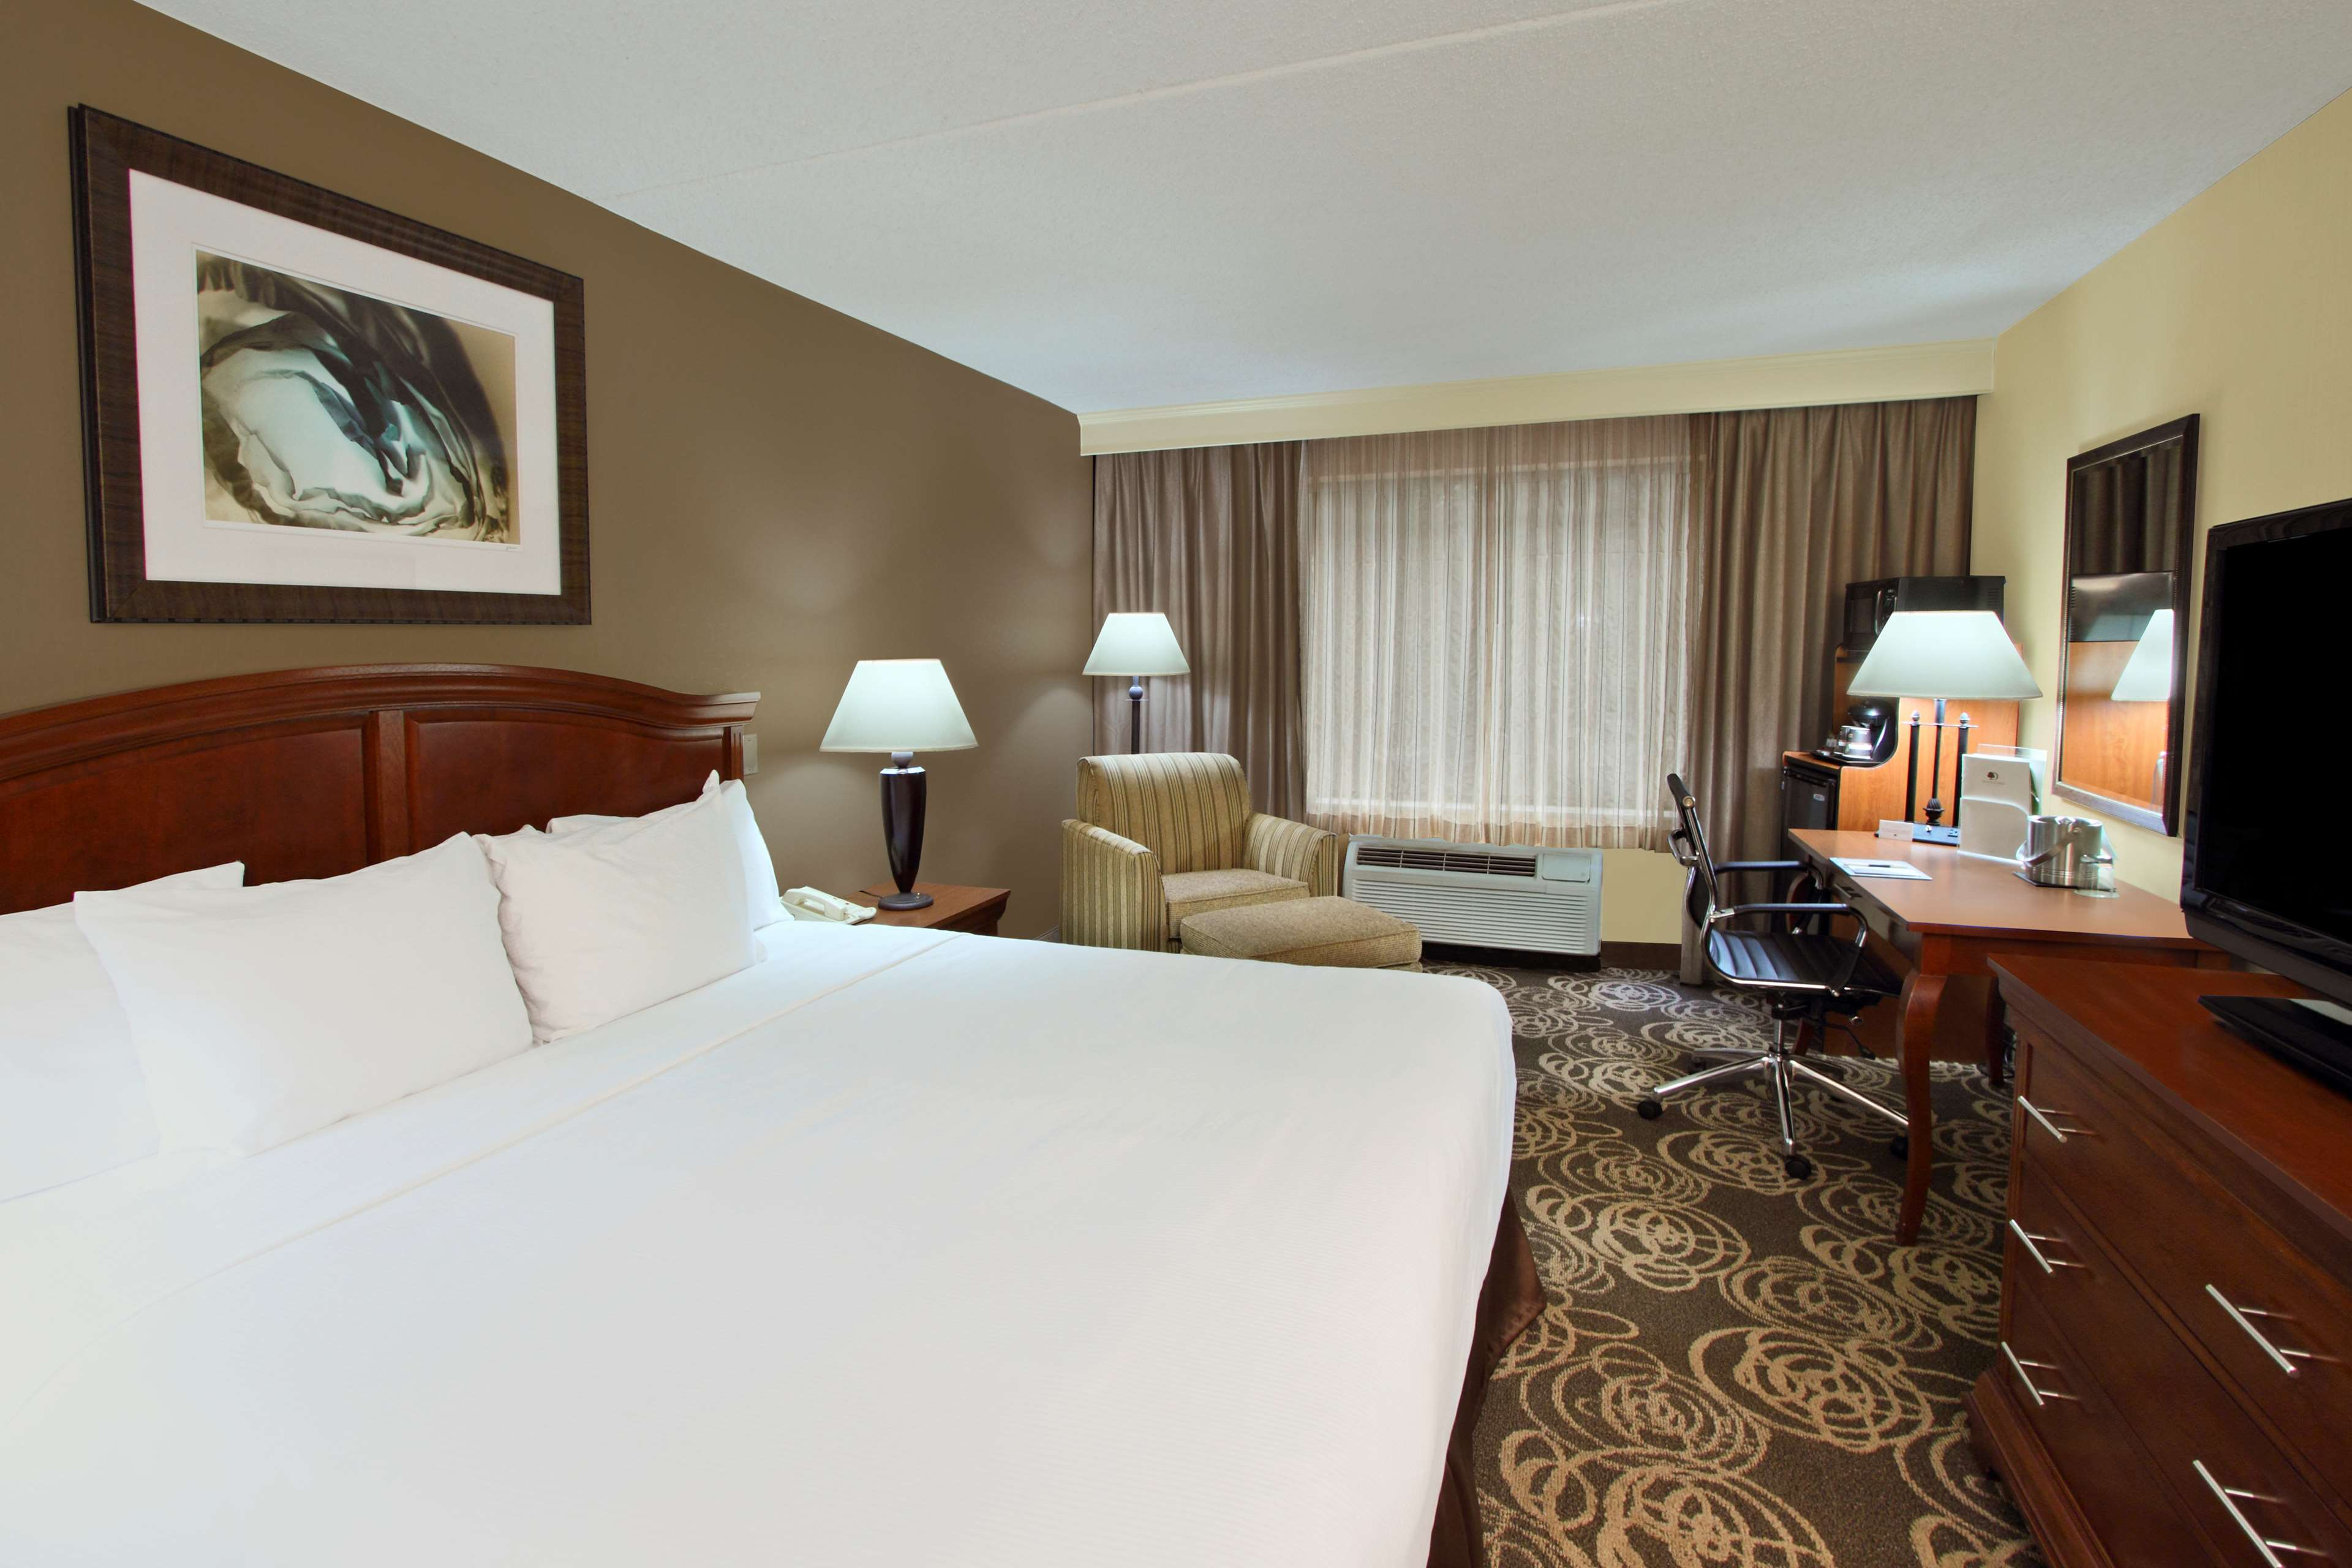 DoubleTree by Hilton Hotel Mahwah image 15